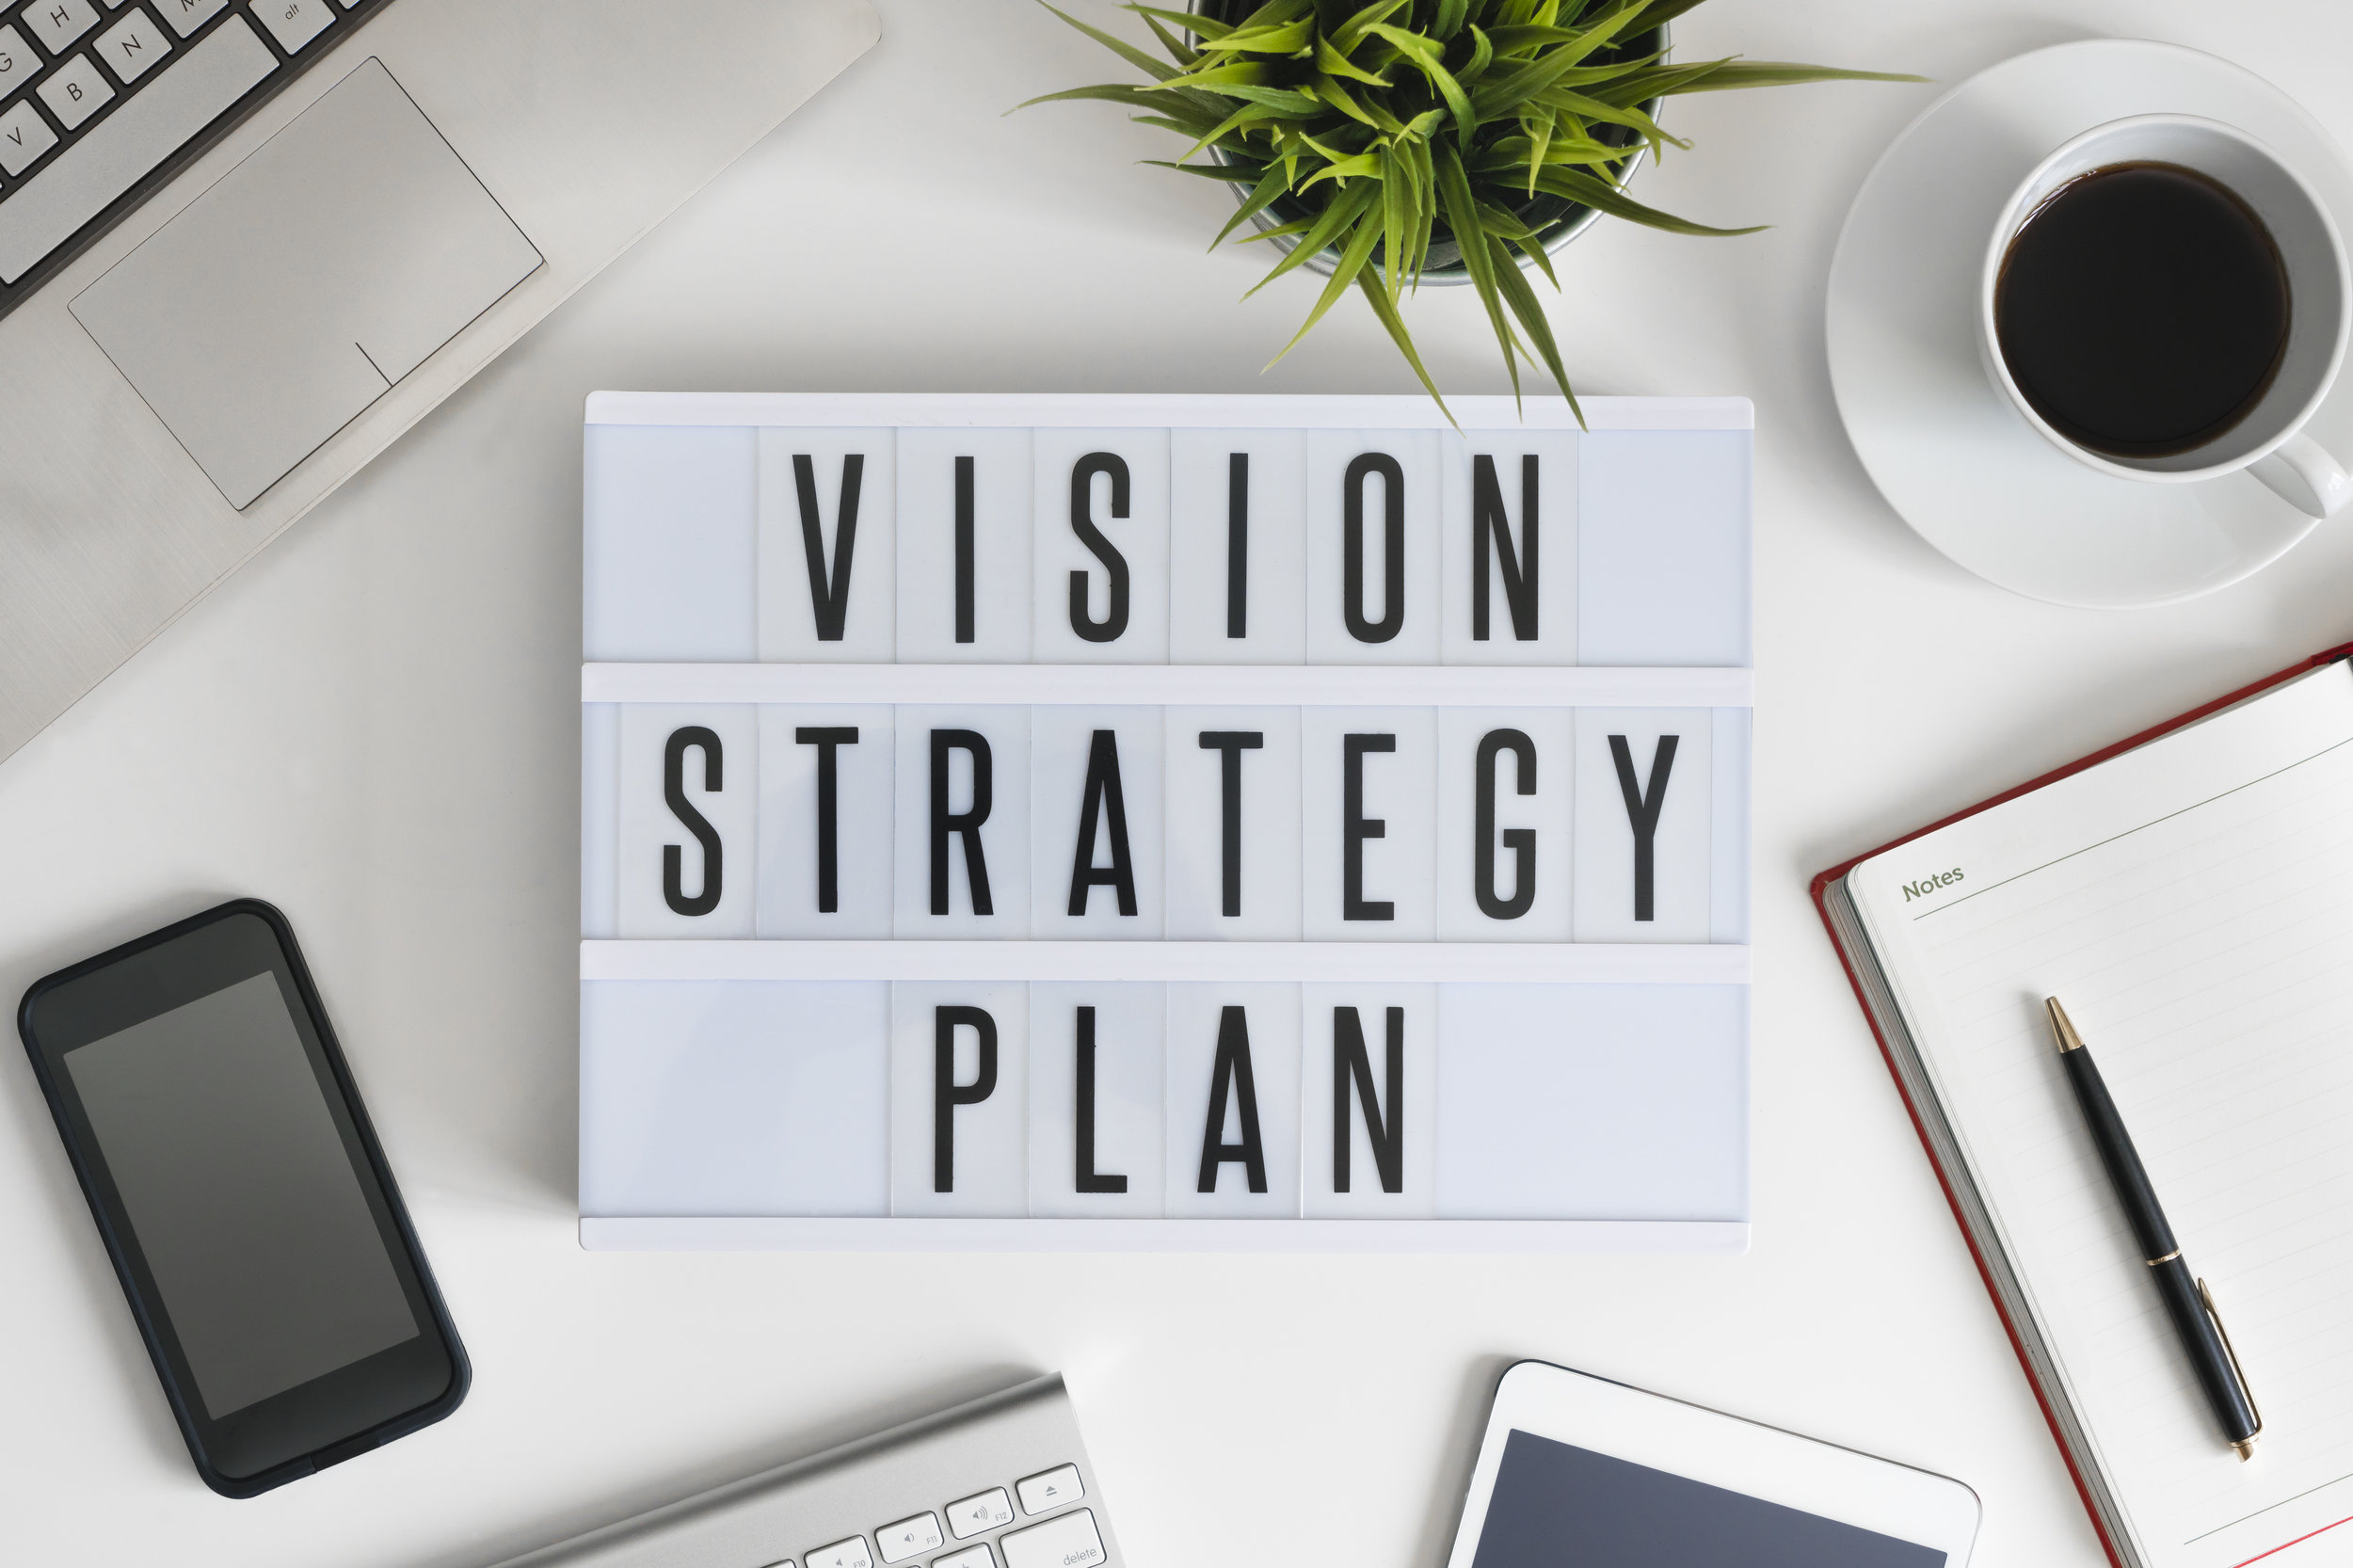 The atuni vision - To provide business, industry, government and entrepreneurs the expertise, tools, resources and STRATEGY to implement PLANS that assist with the development of skills and gifts of their talent.